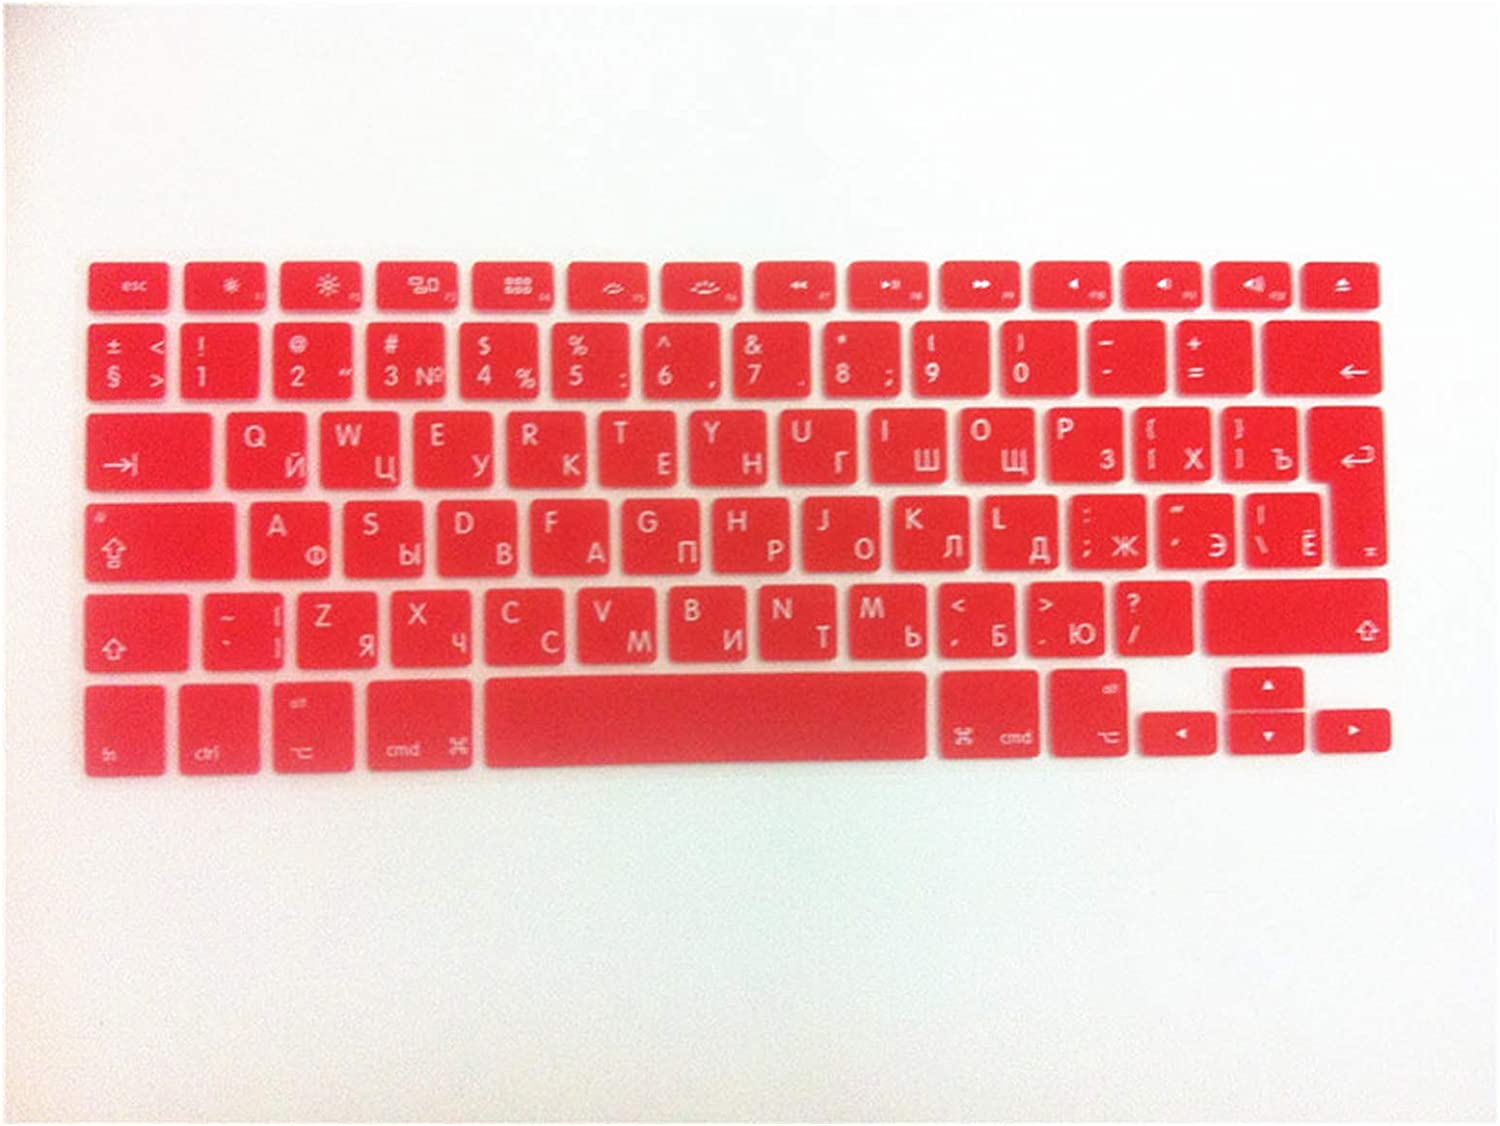 Russian UK EU Silicone Keyboard Cover Skin Protector for MacBook Pro Air 13 15 17 for Mac Air 13.3 5 17 Inch Keybord Cover-in Keyboard Covers from Computer /& Office,Red